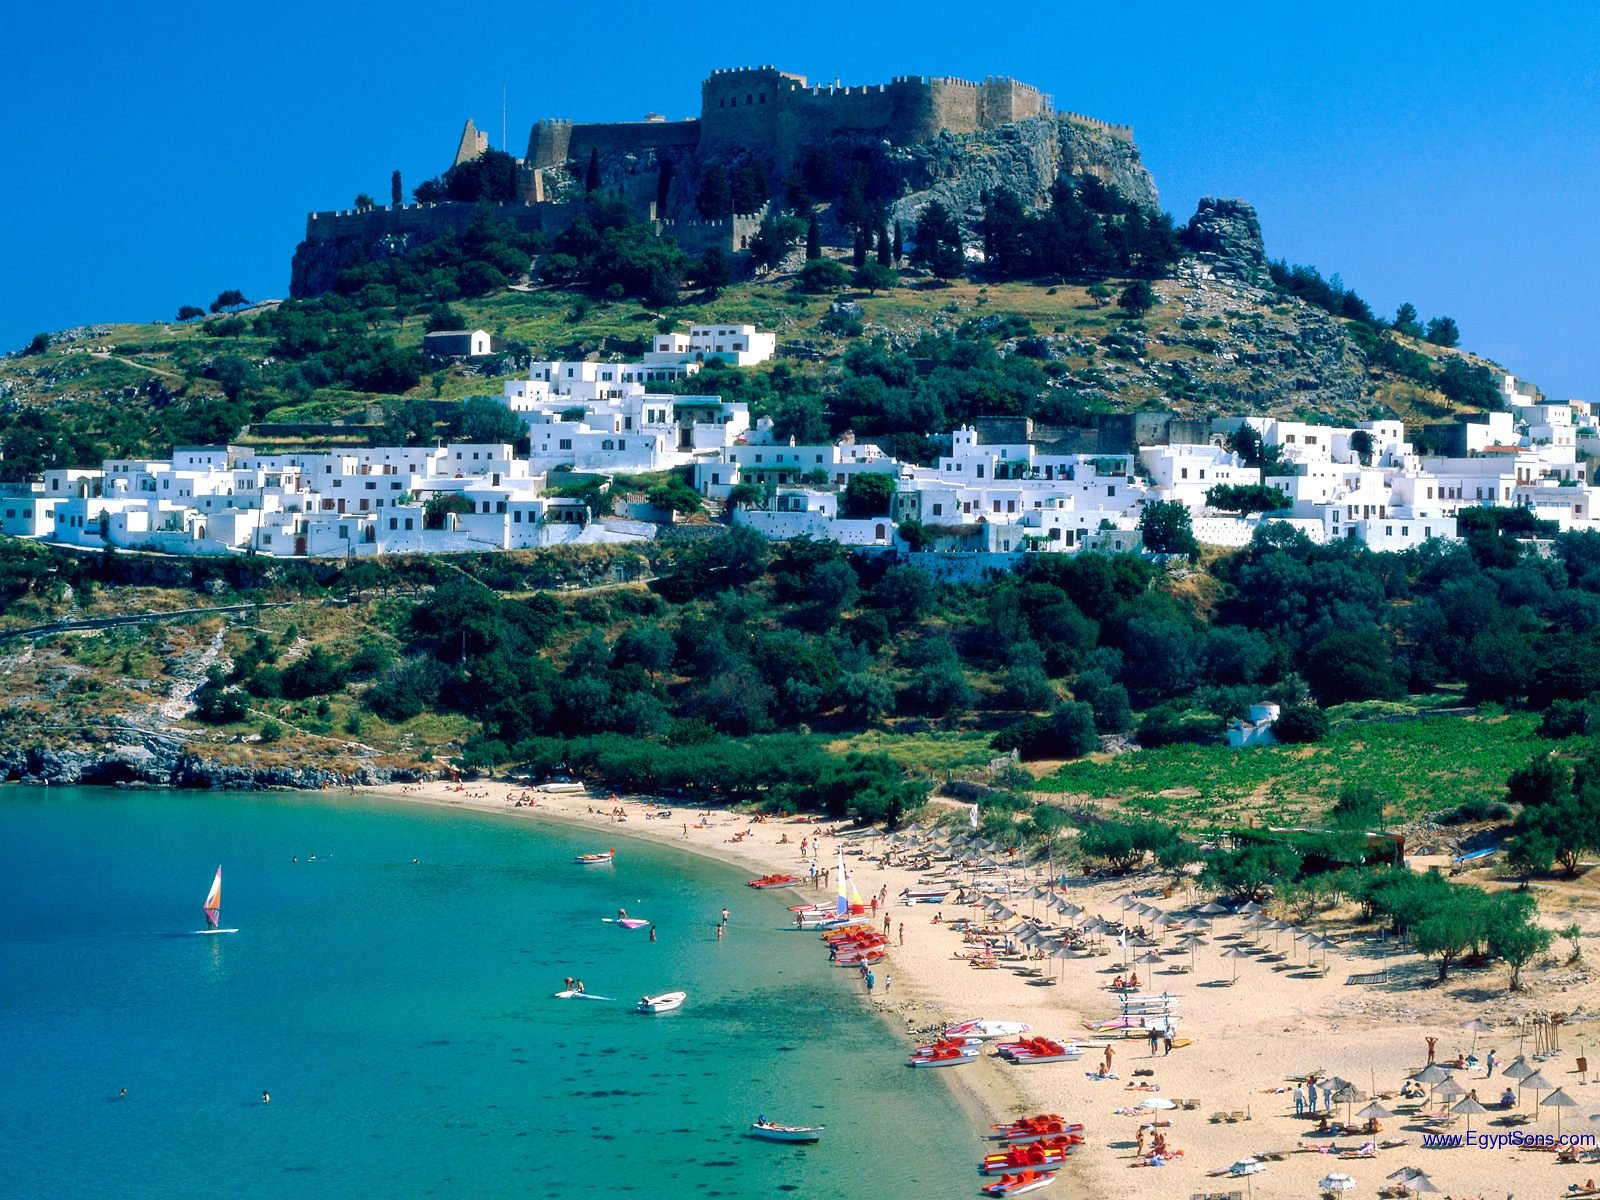 March touristic destination, Rhodes Island, Greece, The white town Lindos